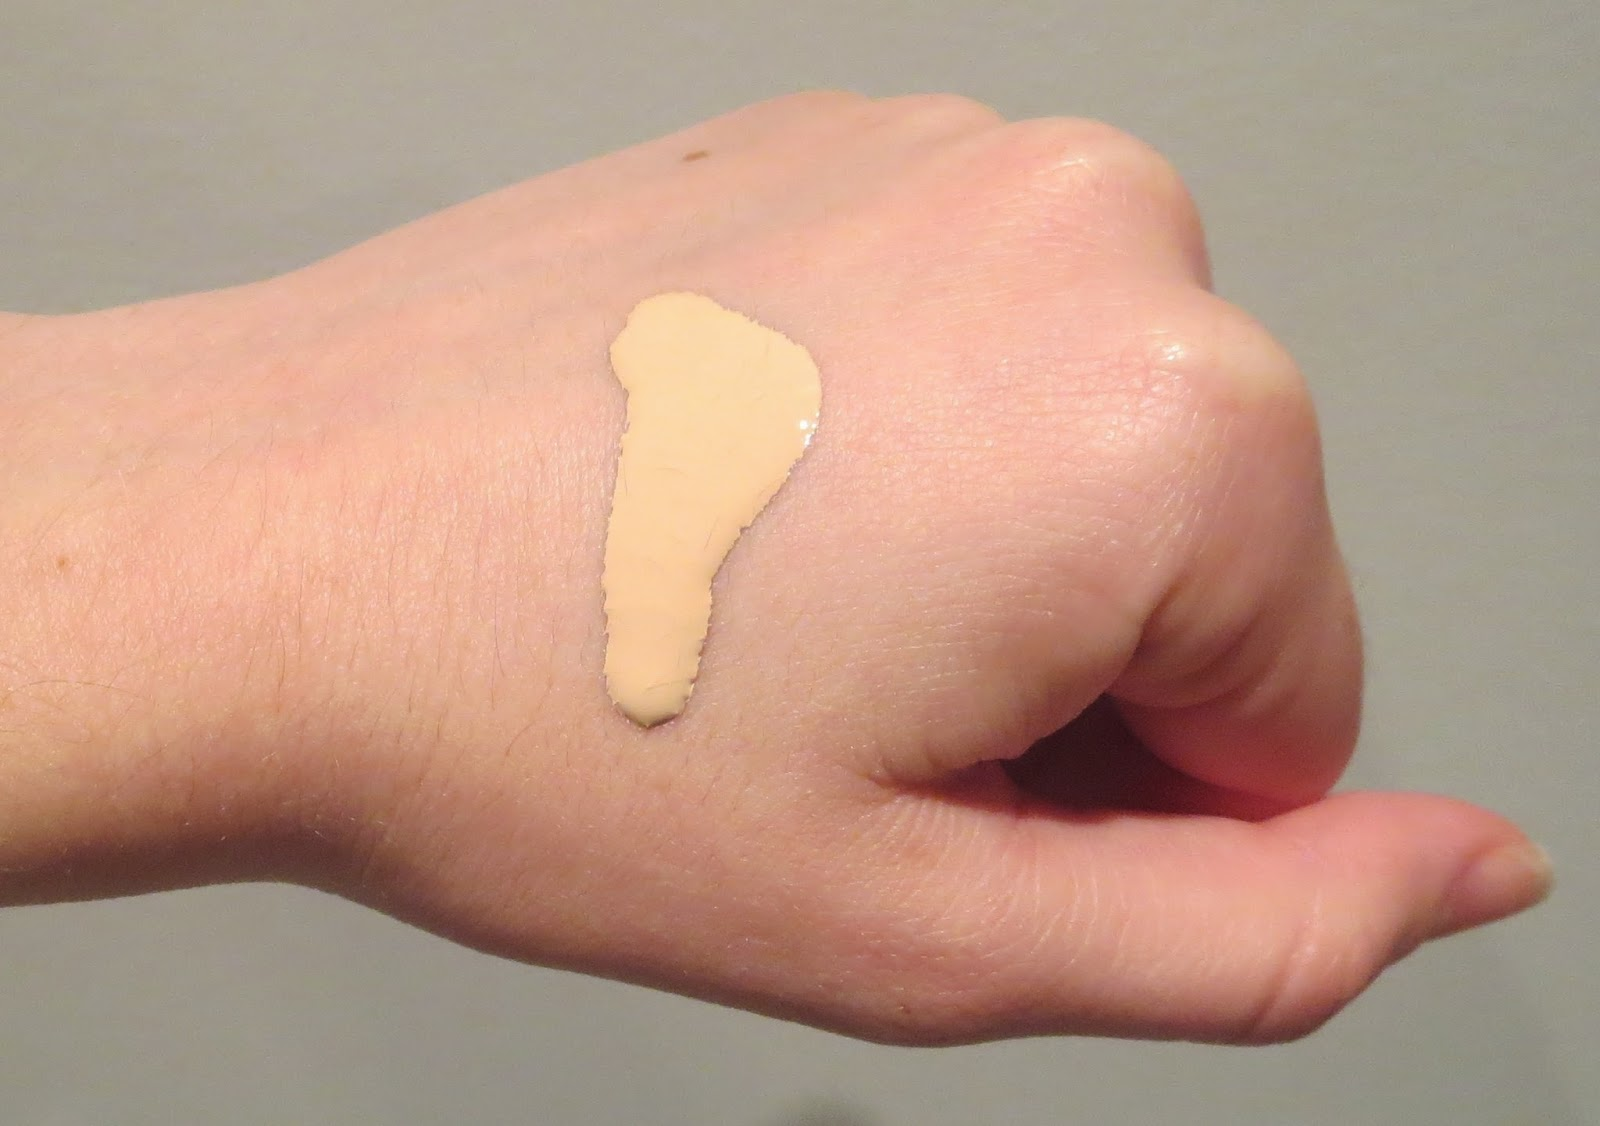 a picture of Bobbi Brown Foundation in Porcelain, swatch, texture